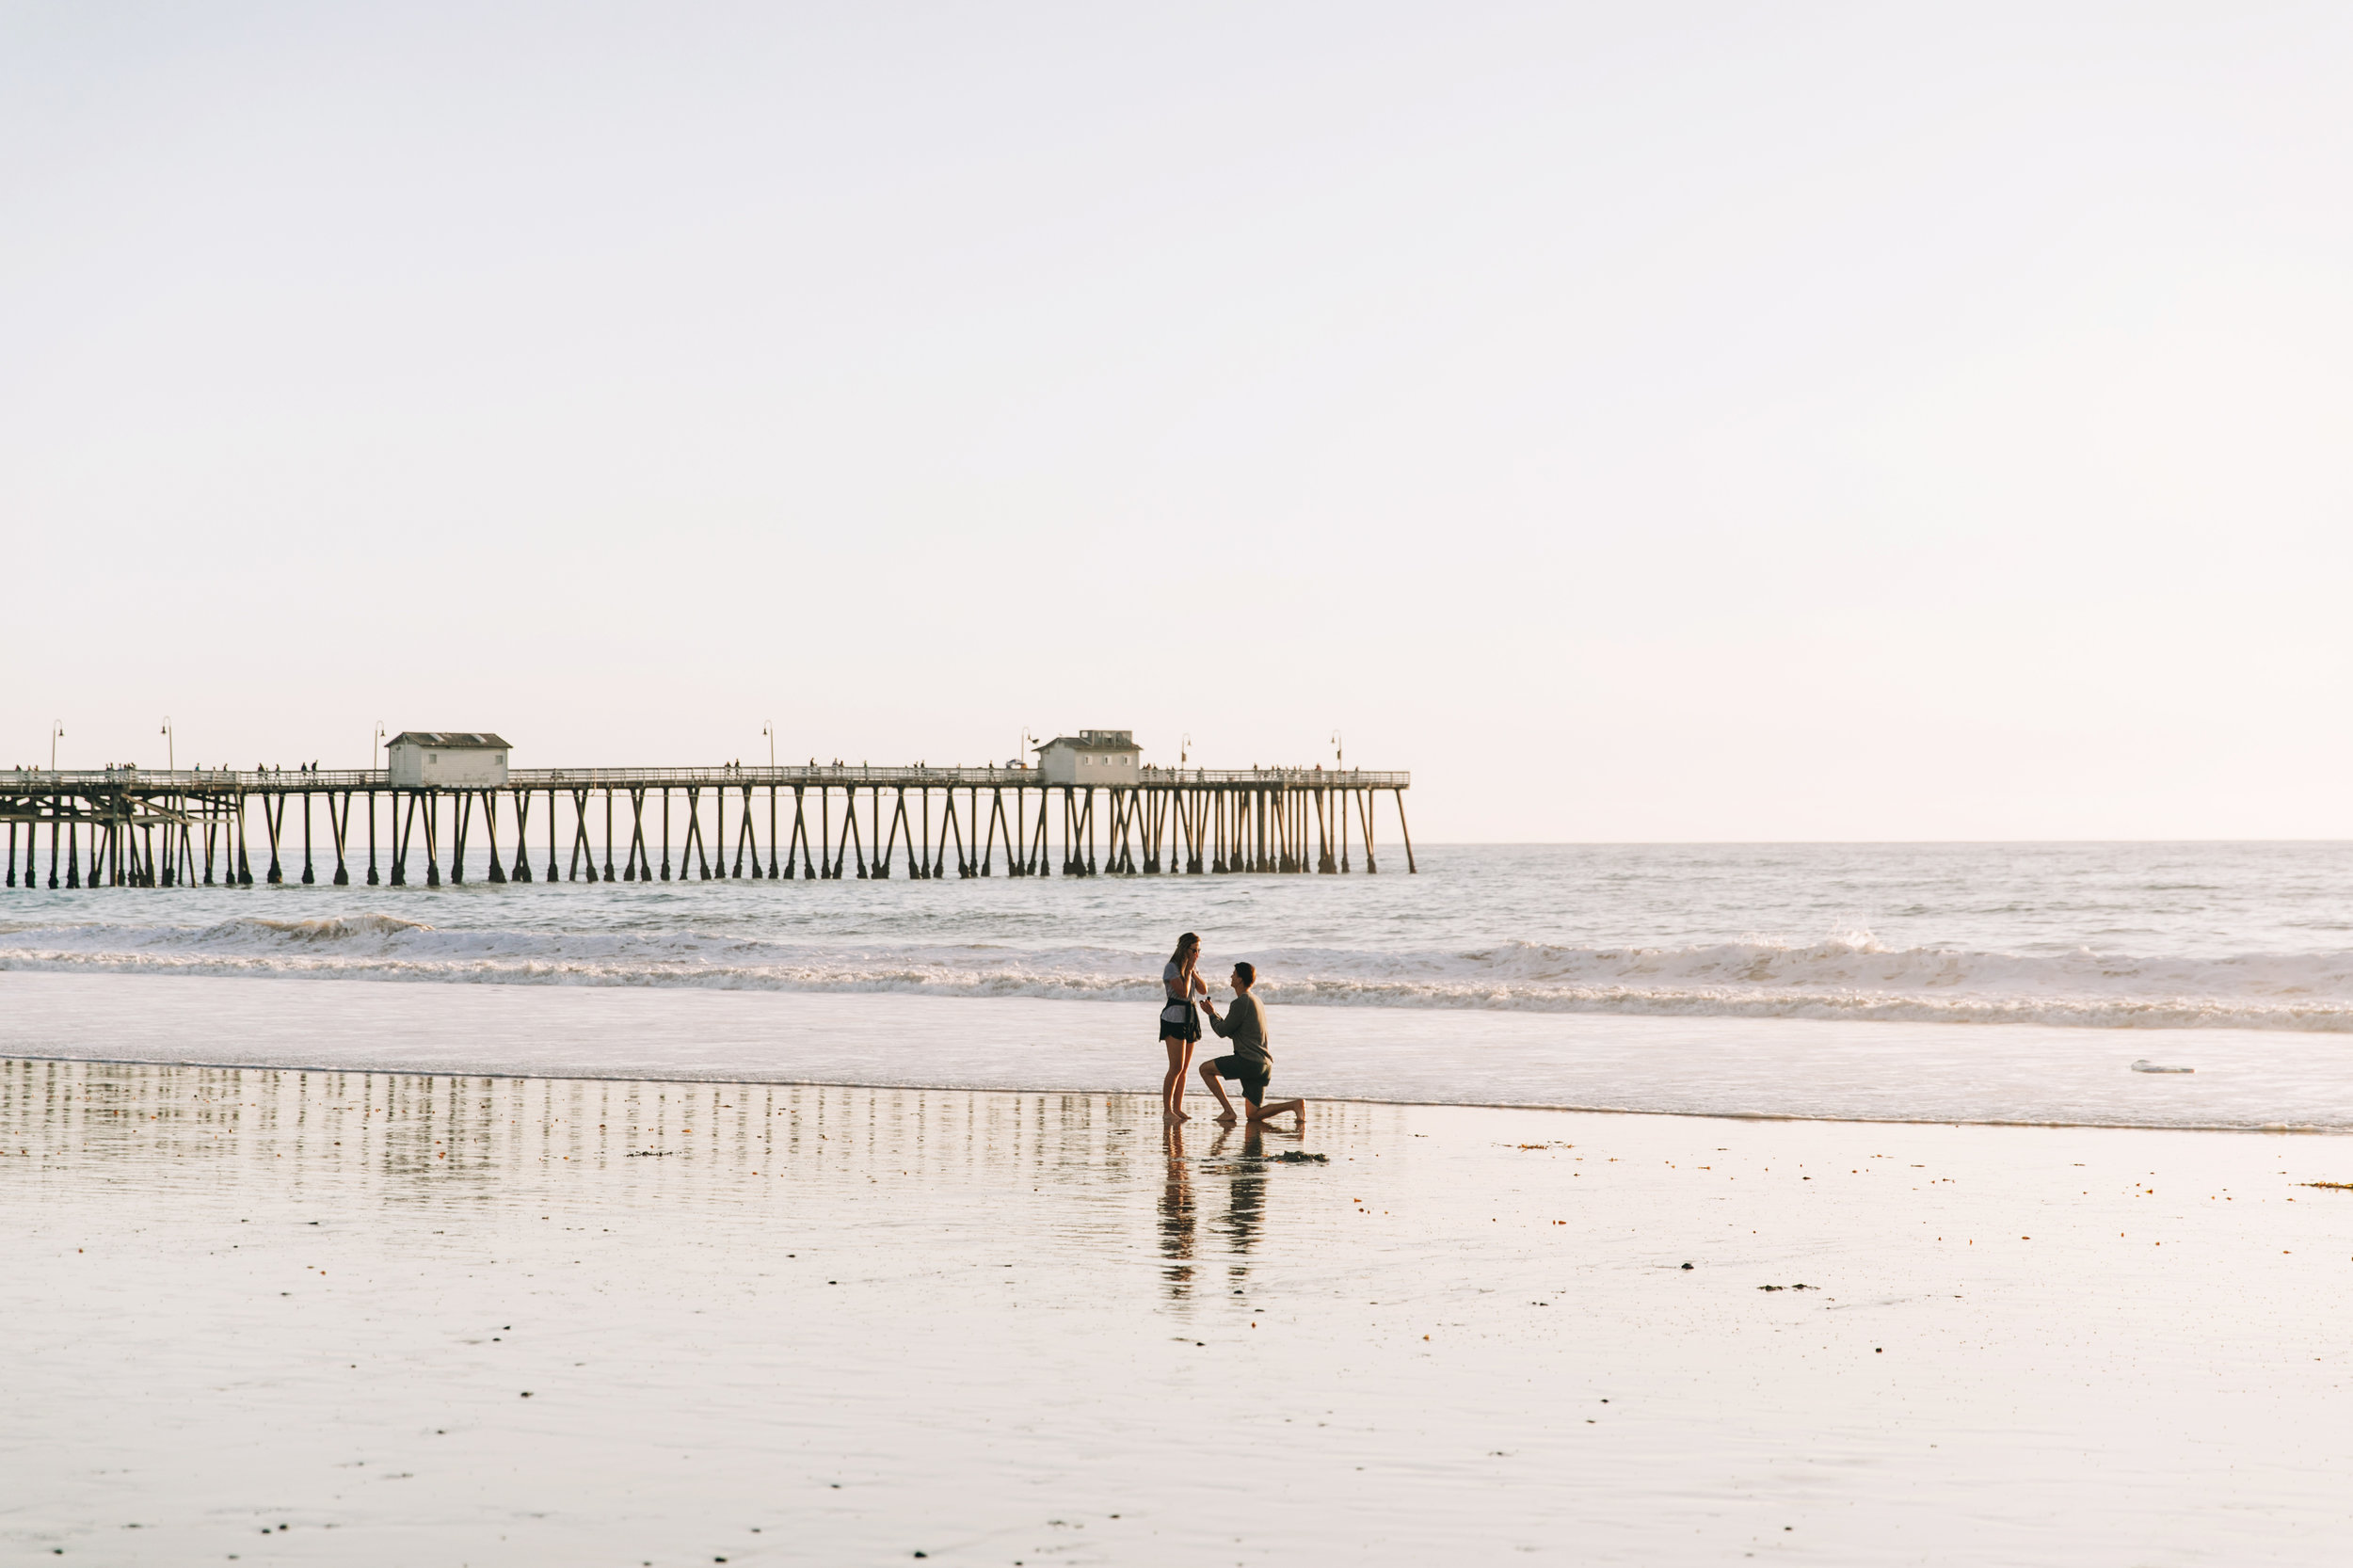 OC engagement photographer, Southern California engagement photographer, Orange County engagement photographer, SoCal engagement photographer, San Clemente proposal, SoCal proposal photographer